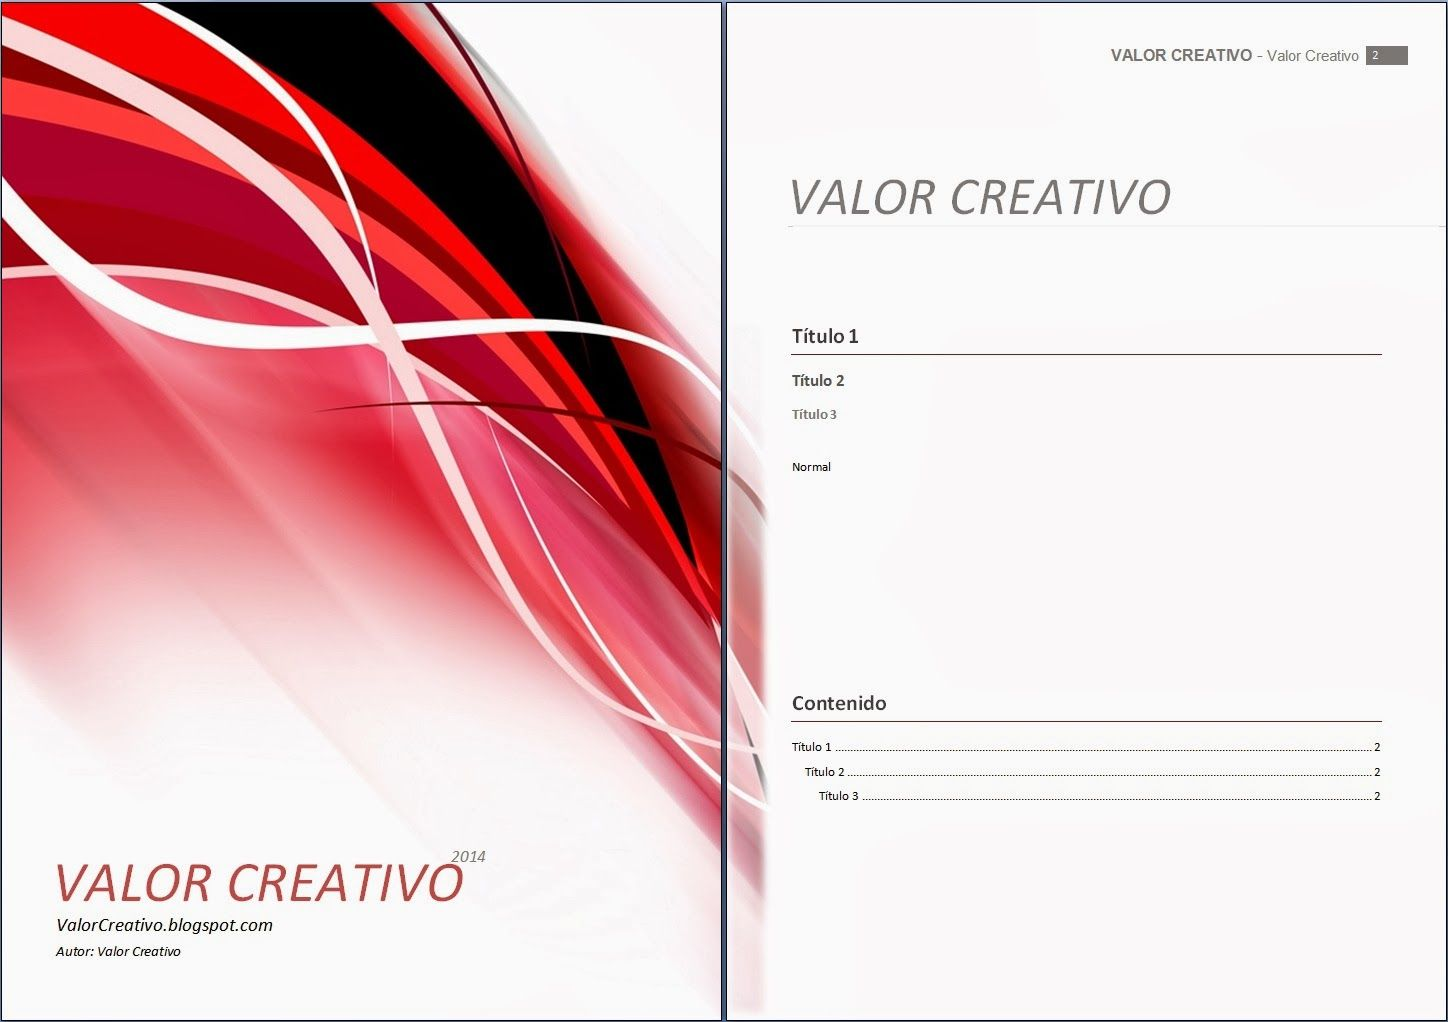 Valor Creativo: Plantillas Word 2003, 2007, 2010 y 2013 ...